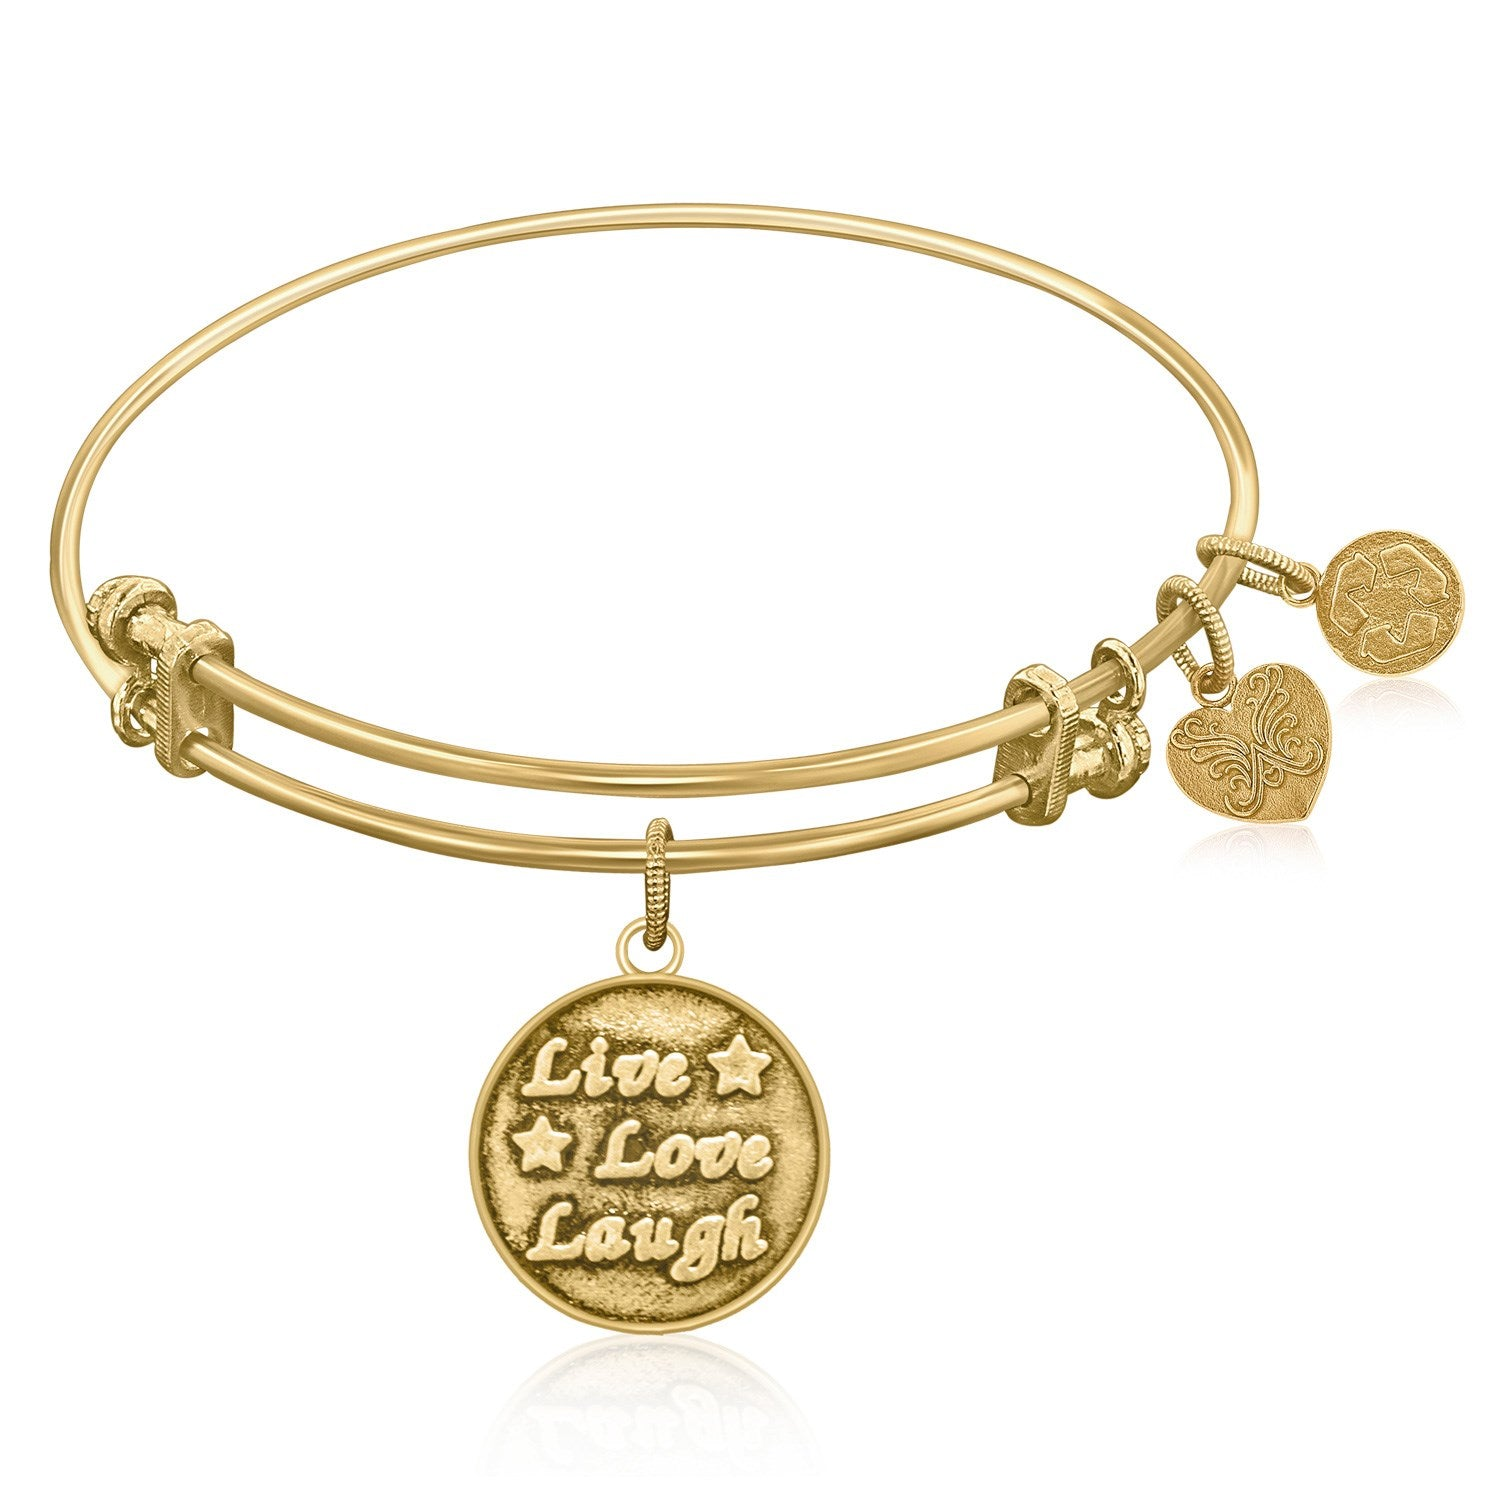 Expandable Bangle in Yellow Tone Brass with Joy of Life Symbol